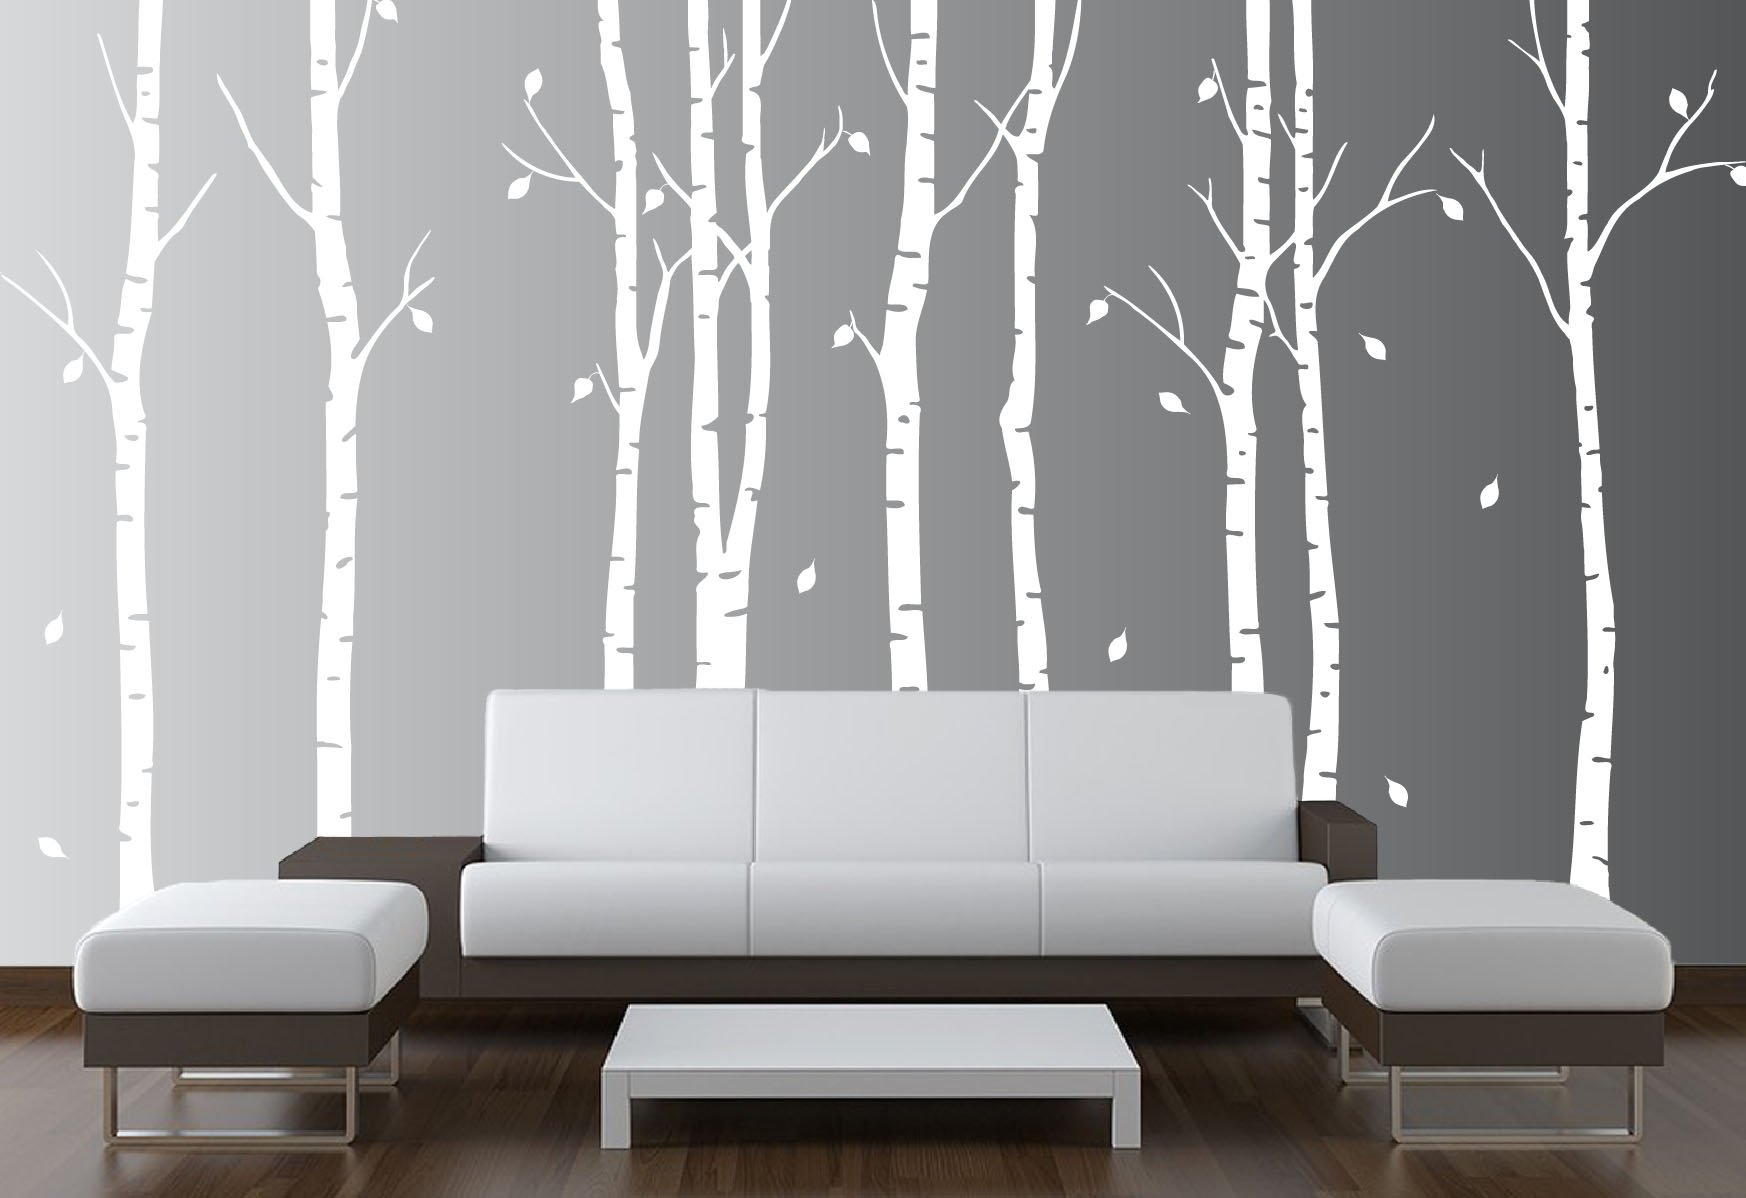 Birch Tree Wall Decal Nursery Forest Vinyl Sticker Removable Animals Branches Art Stencil Leaves (9 Trees) #1263 (Matte White, 108'' (9ft) Tall)